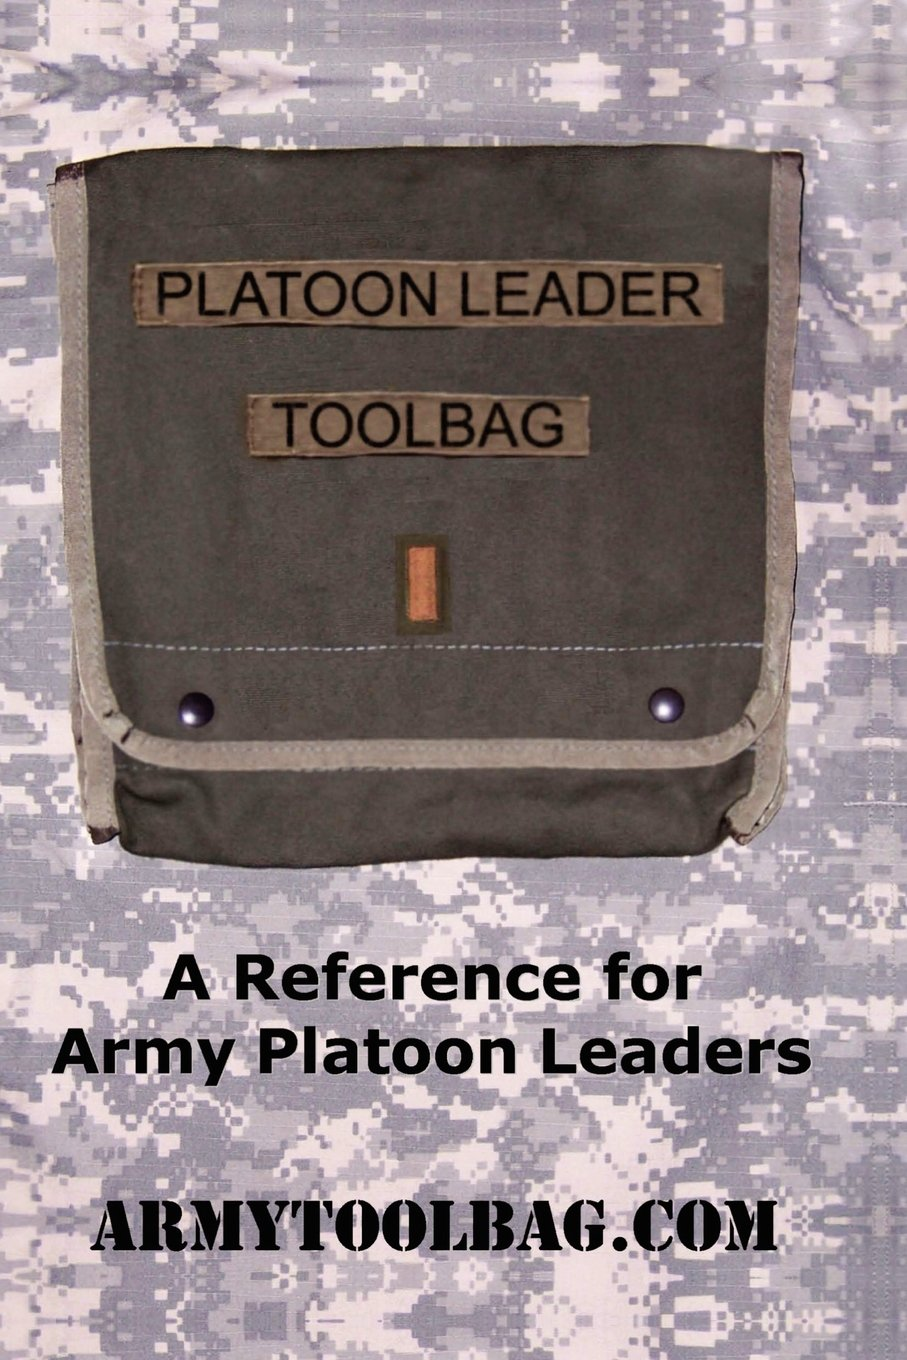 Platoon Leader Toolbag: A Reference for Army Platoon Leaders ebook